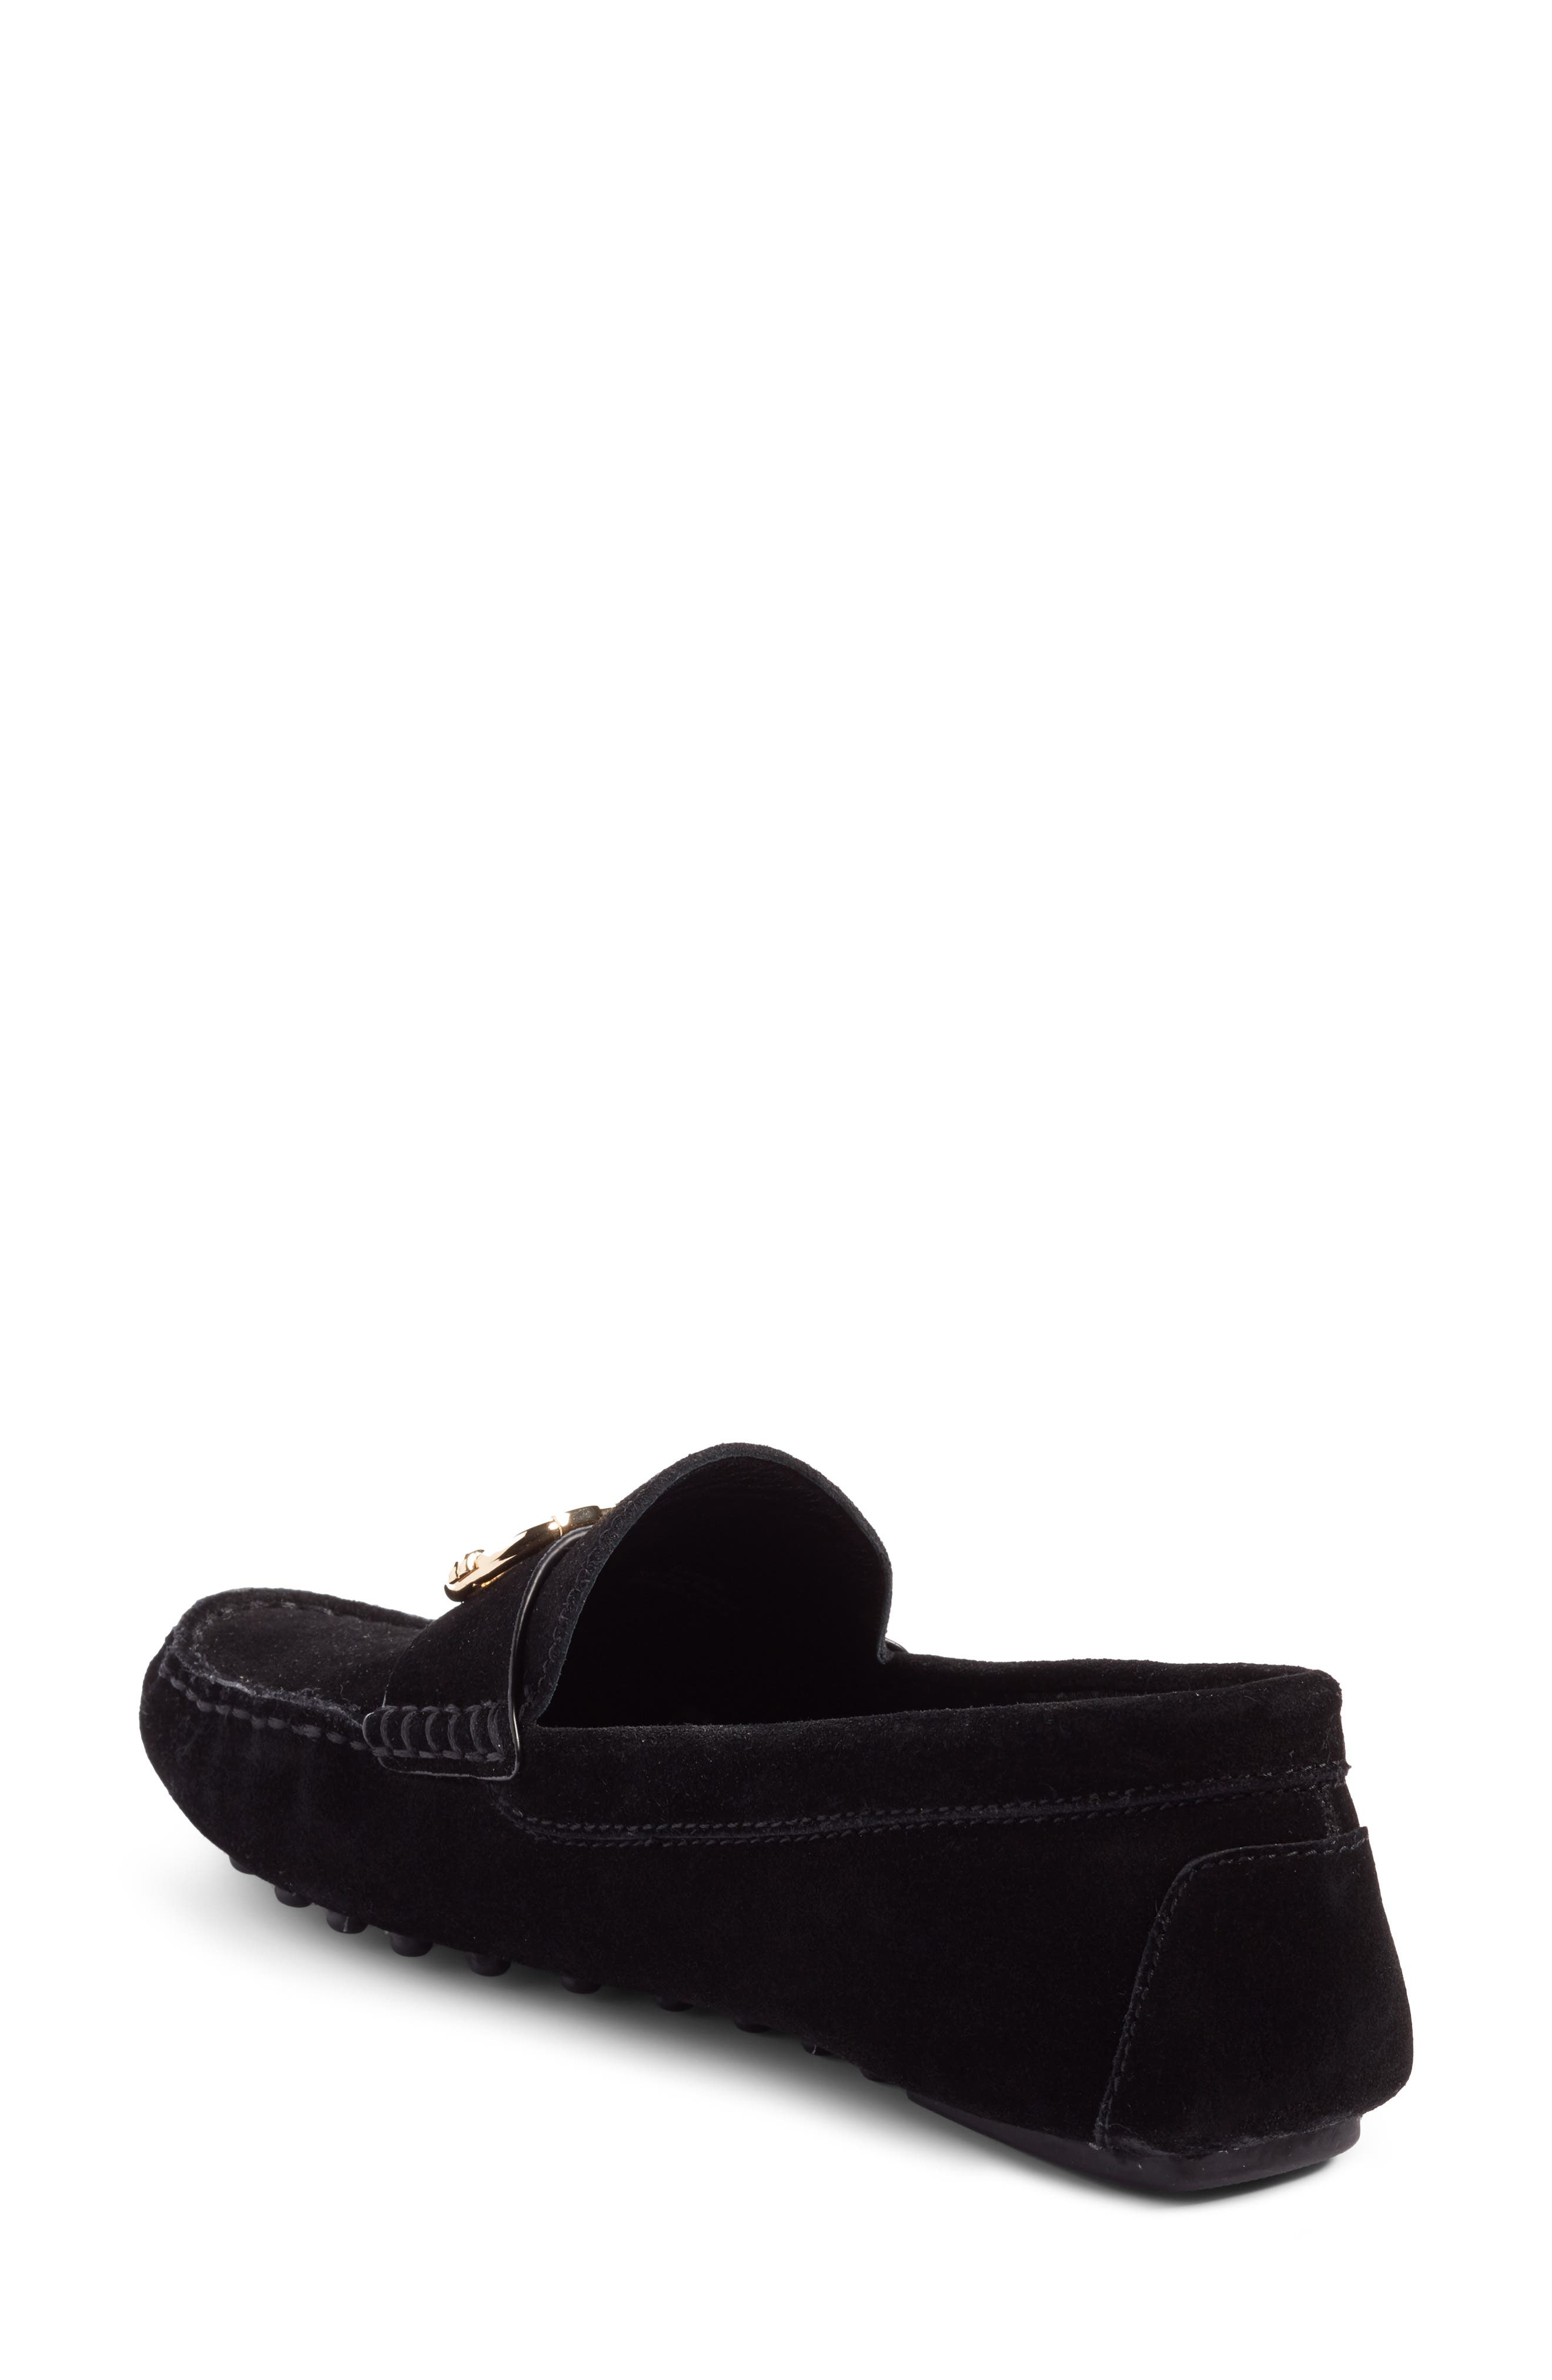 Gemini Driving Loafer,                             Alternate thumbnail 4, color,